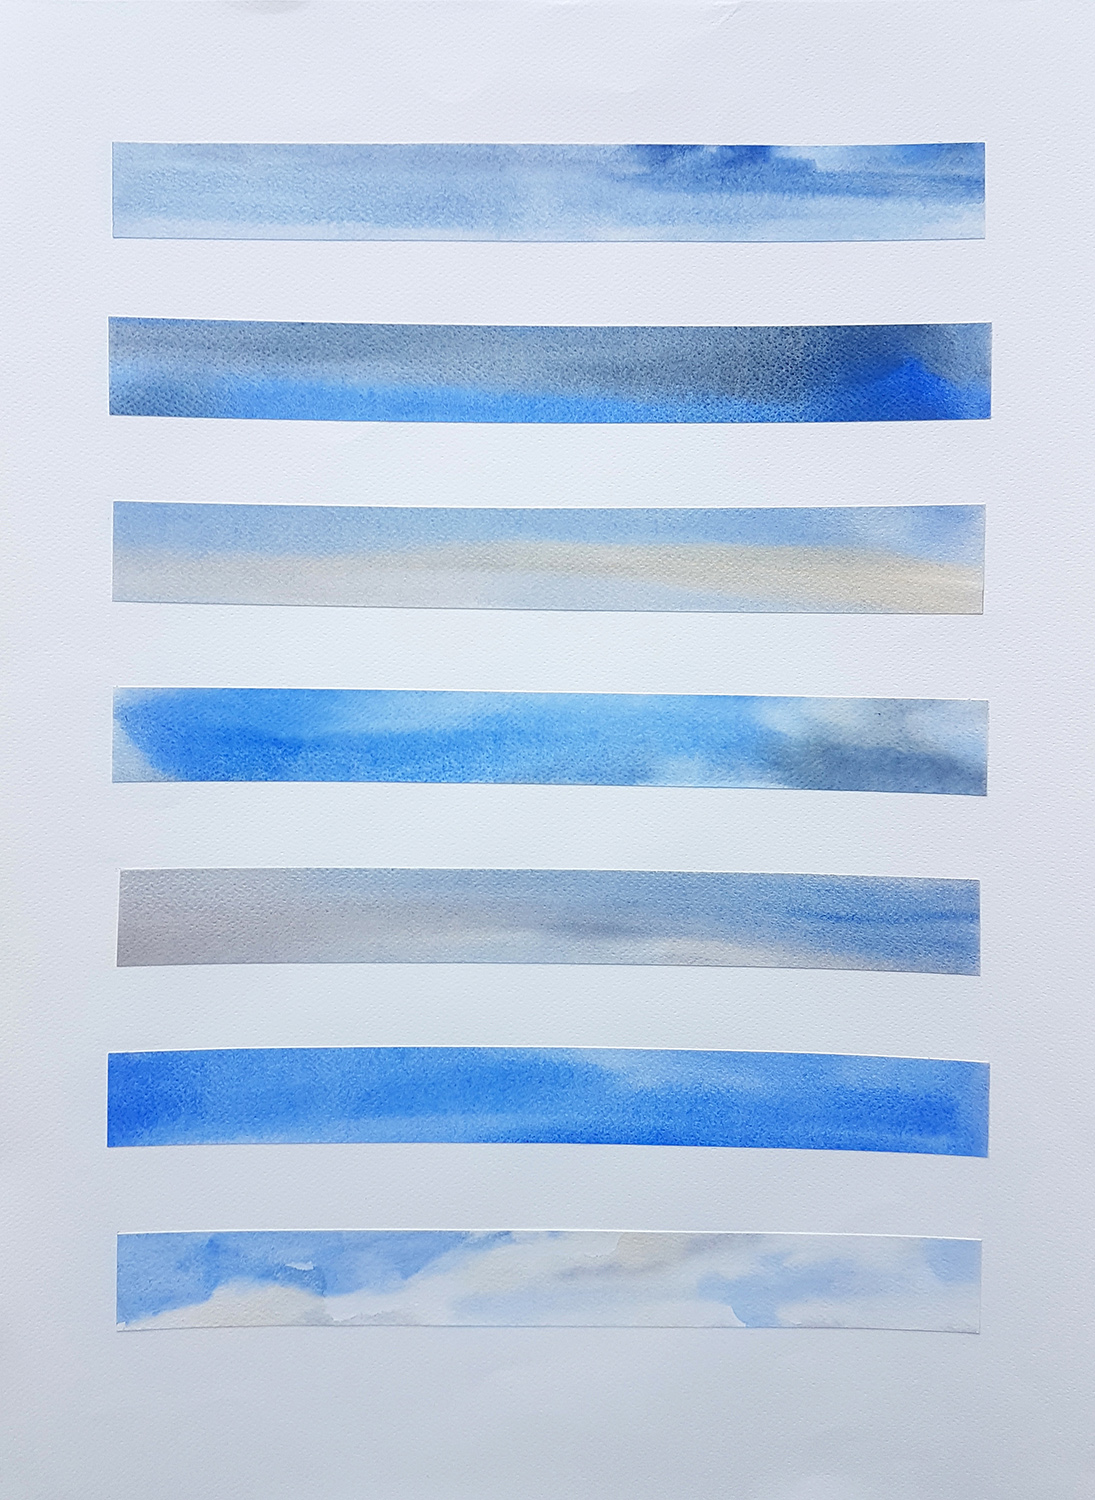 Passing Through 34-17, 2019, Watercolour on paper, 56 x 76 cm, 585 EUR